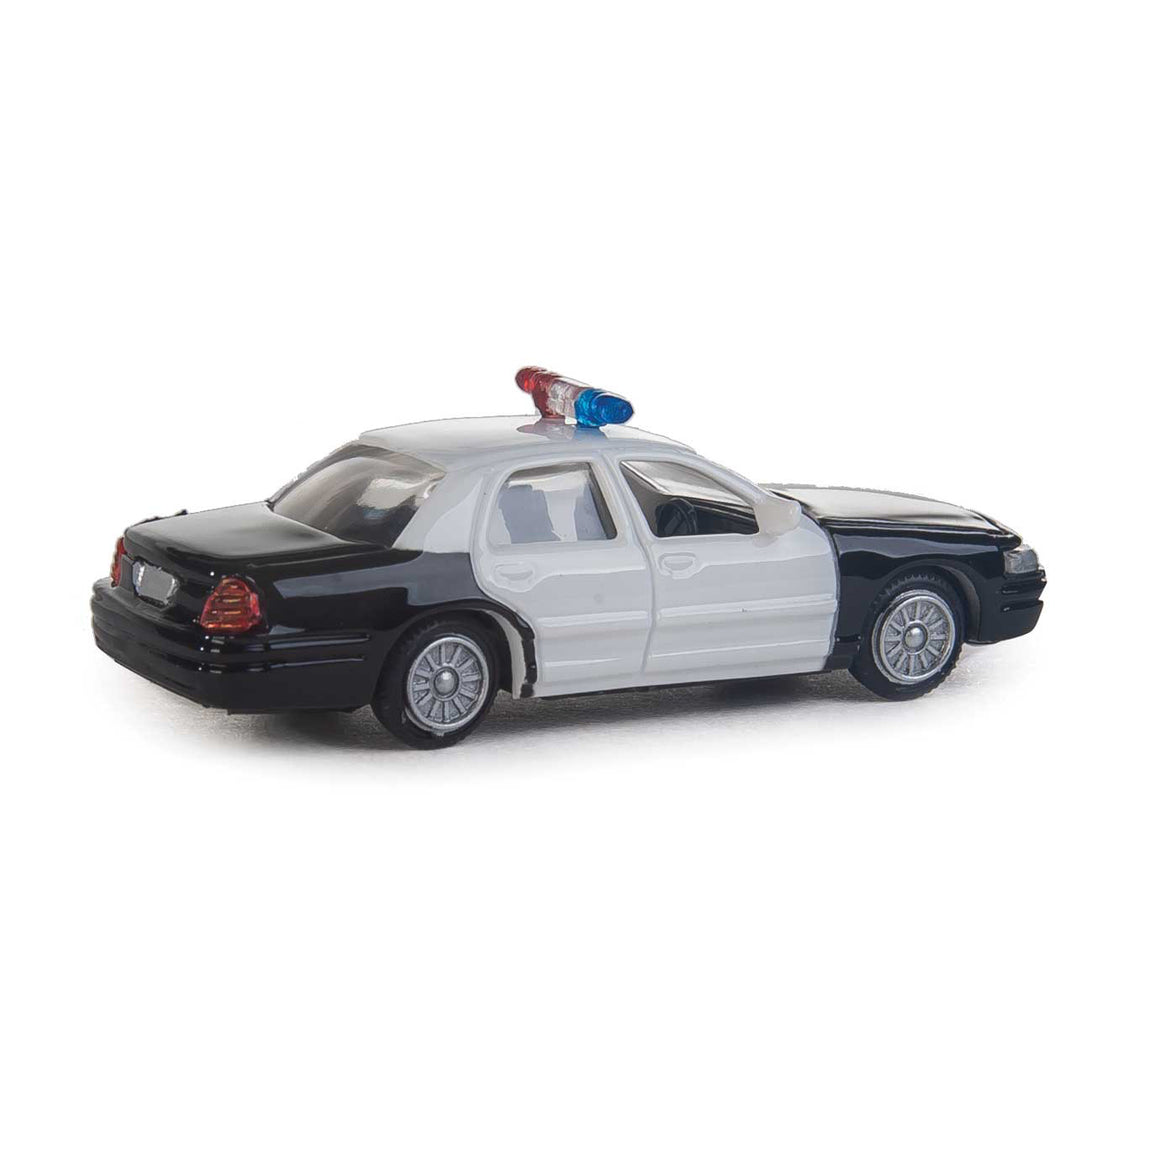 HO Scale: Ford® Crown Victoria Interceptor - Black & White